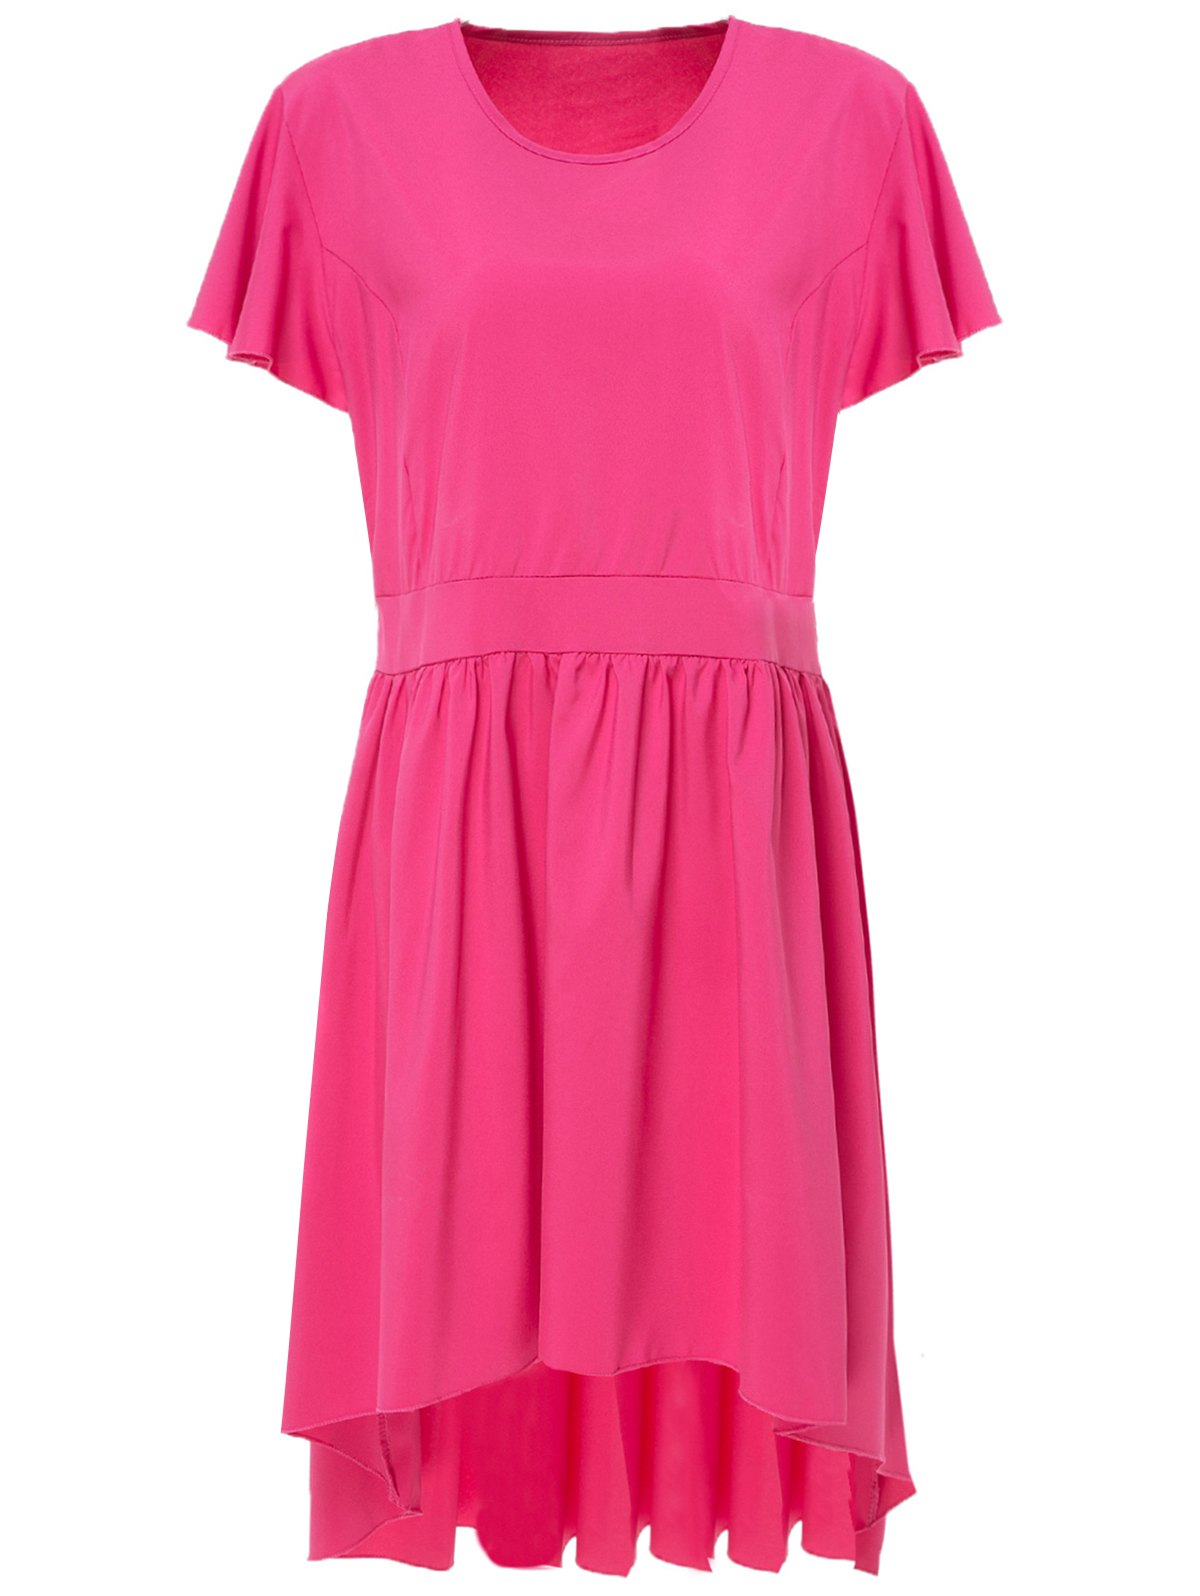 Stylish Solid Color Scoop Neck Pleated Asymmetric Plus Size Dress For WomenWomen<br><br><br>Size: 4XL<br>Color: RED